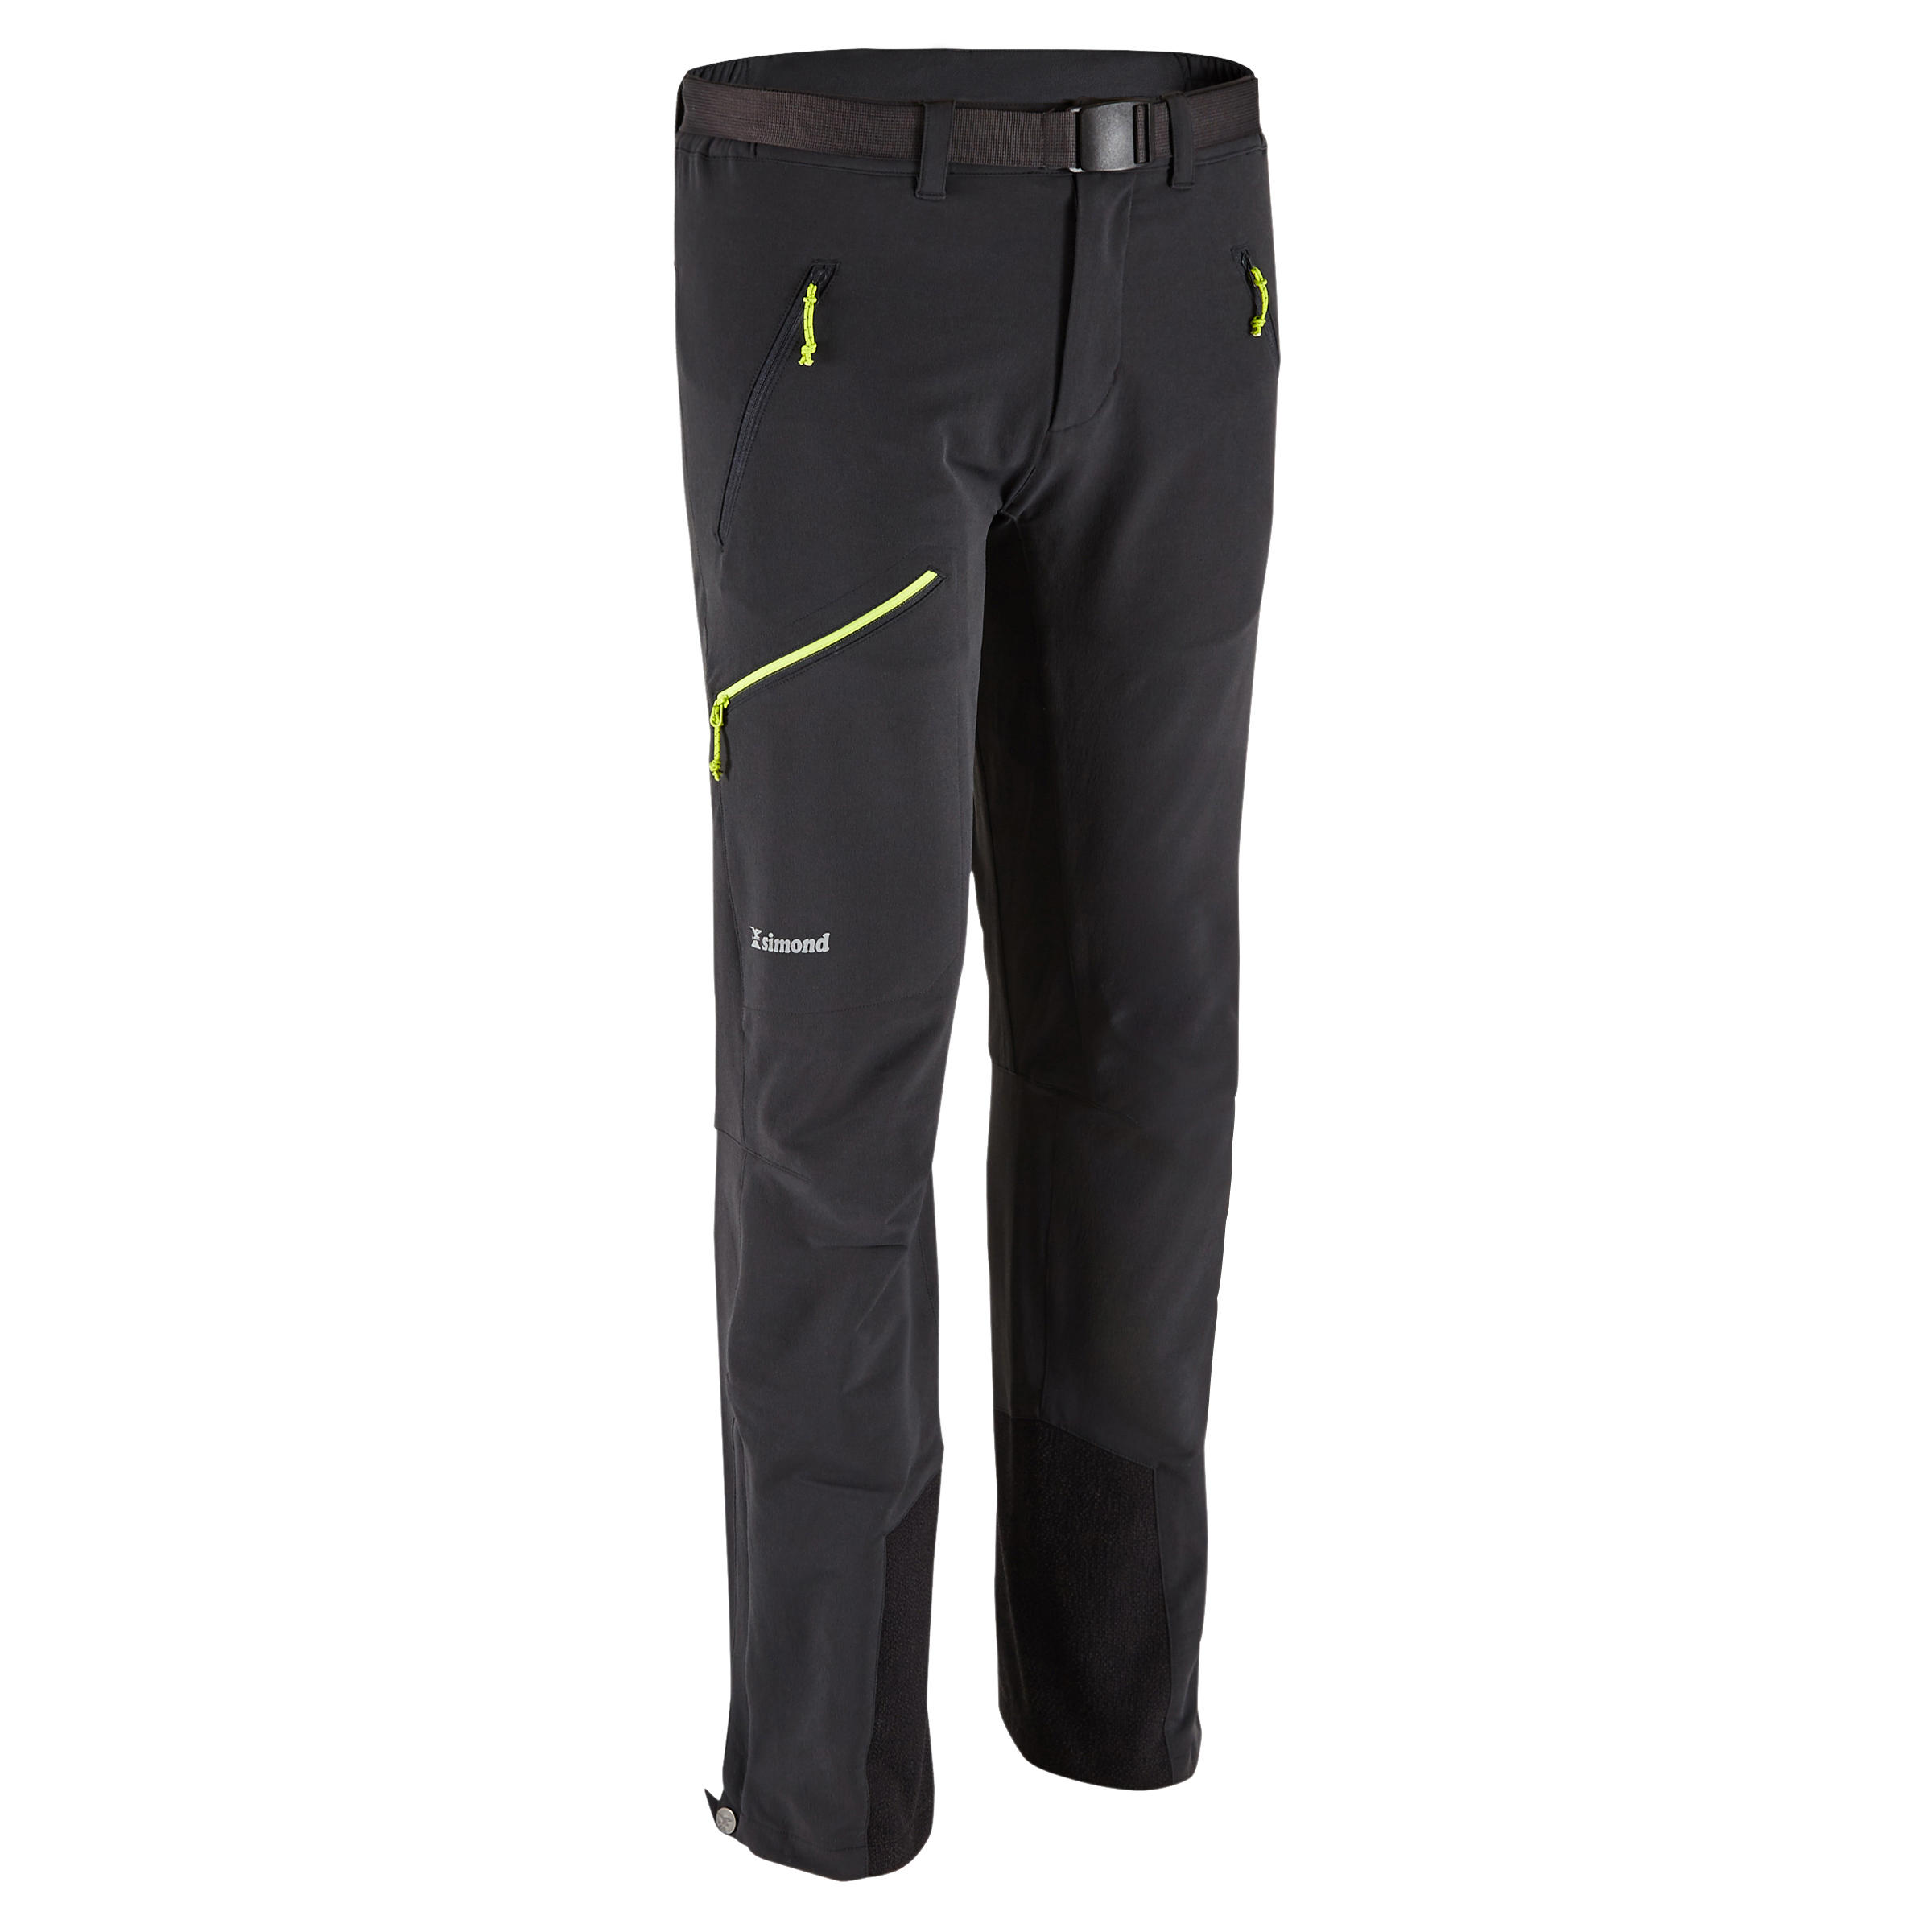 Pantalon Alpinism Light Gri